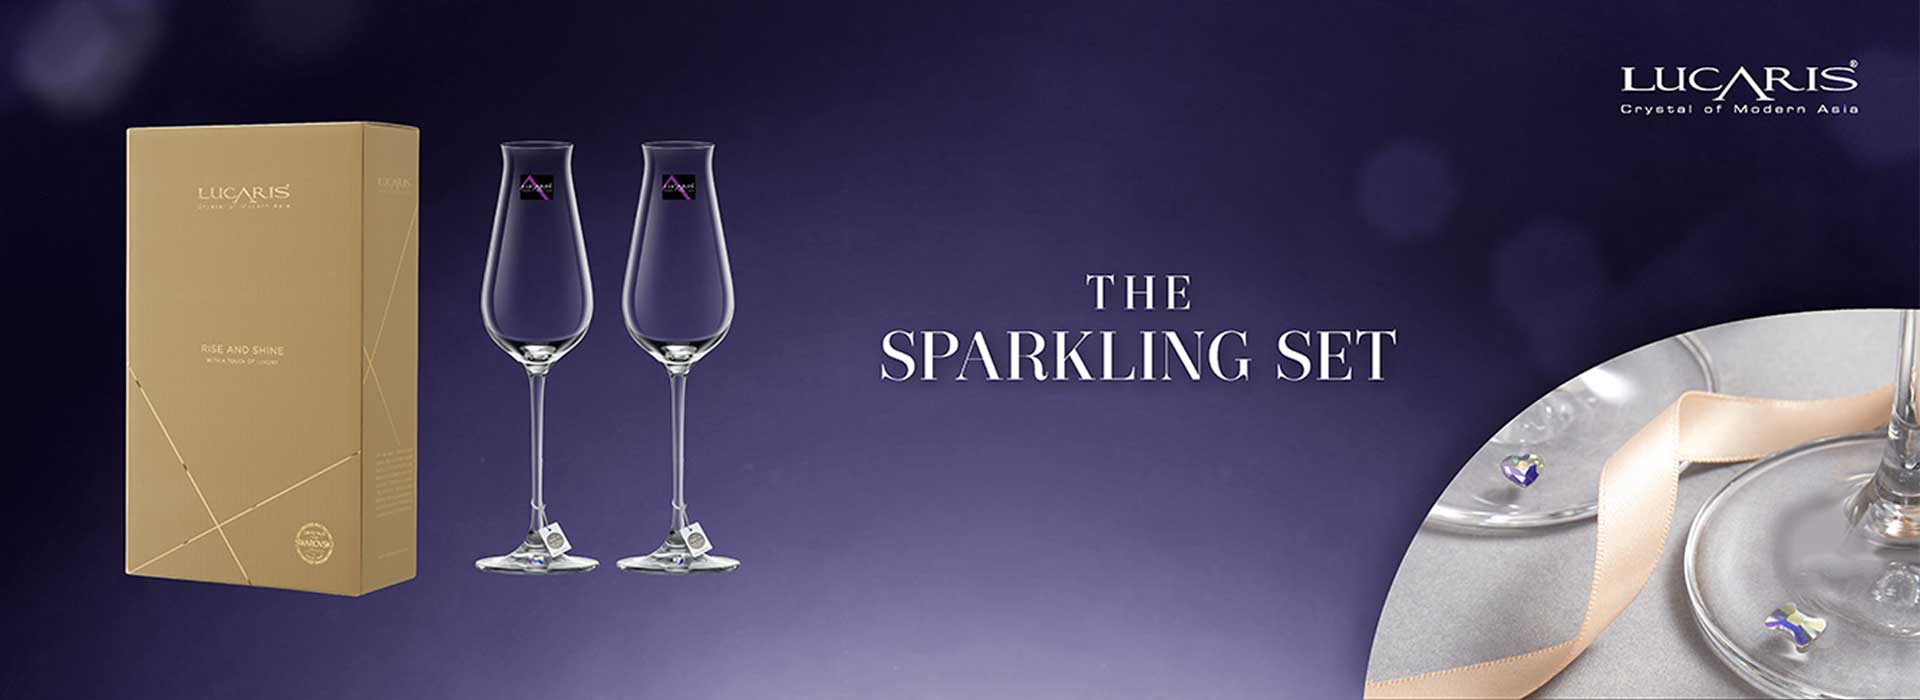 THE SPARKLING SET